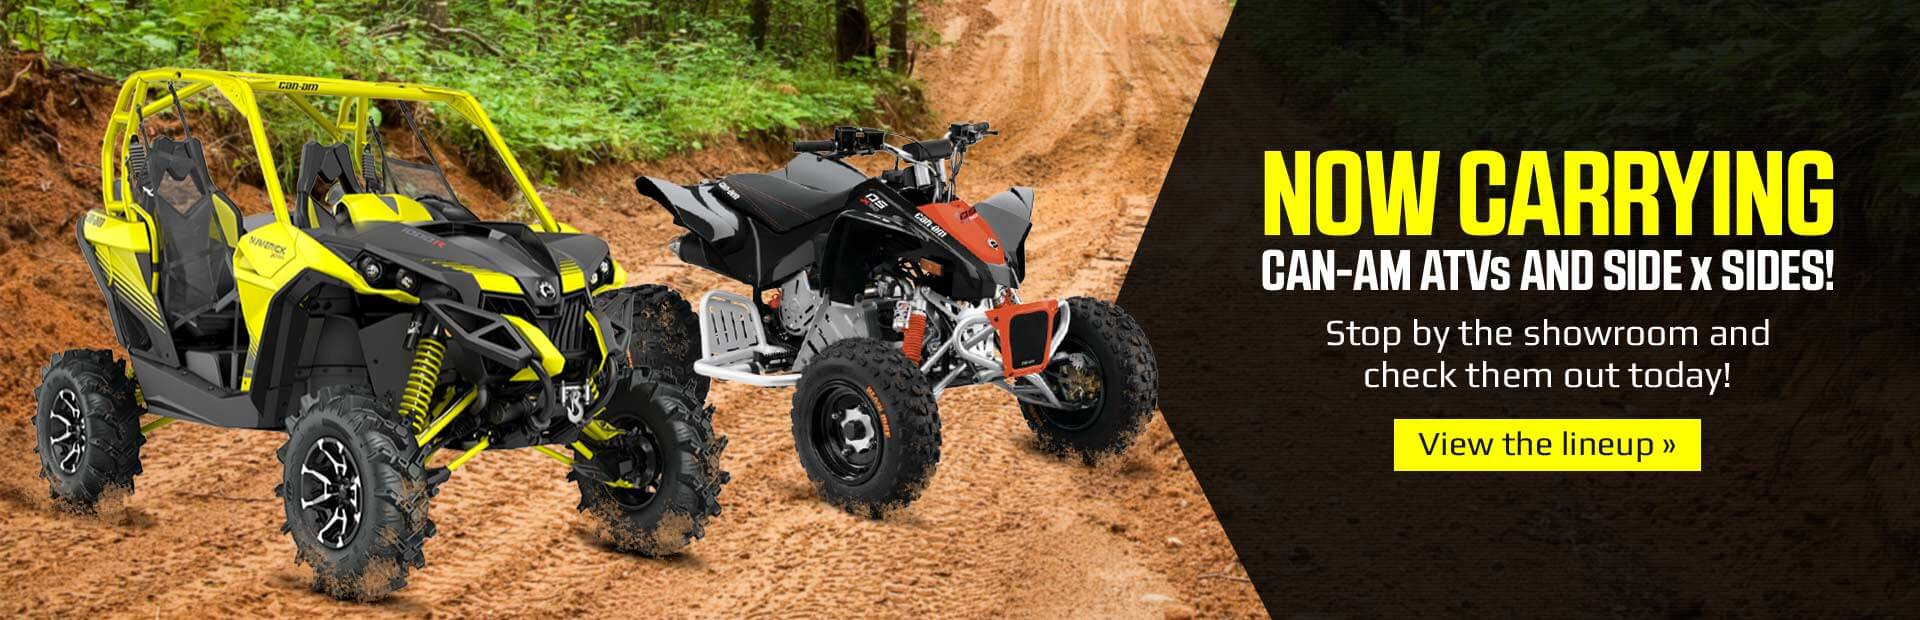 Now Carrying Can-Am ATVs and Side x Sides: Stop by the showroom and check them out today!